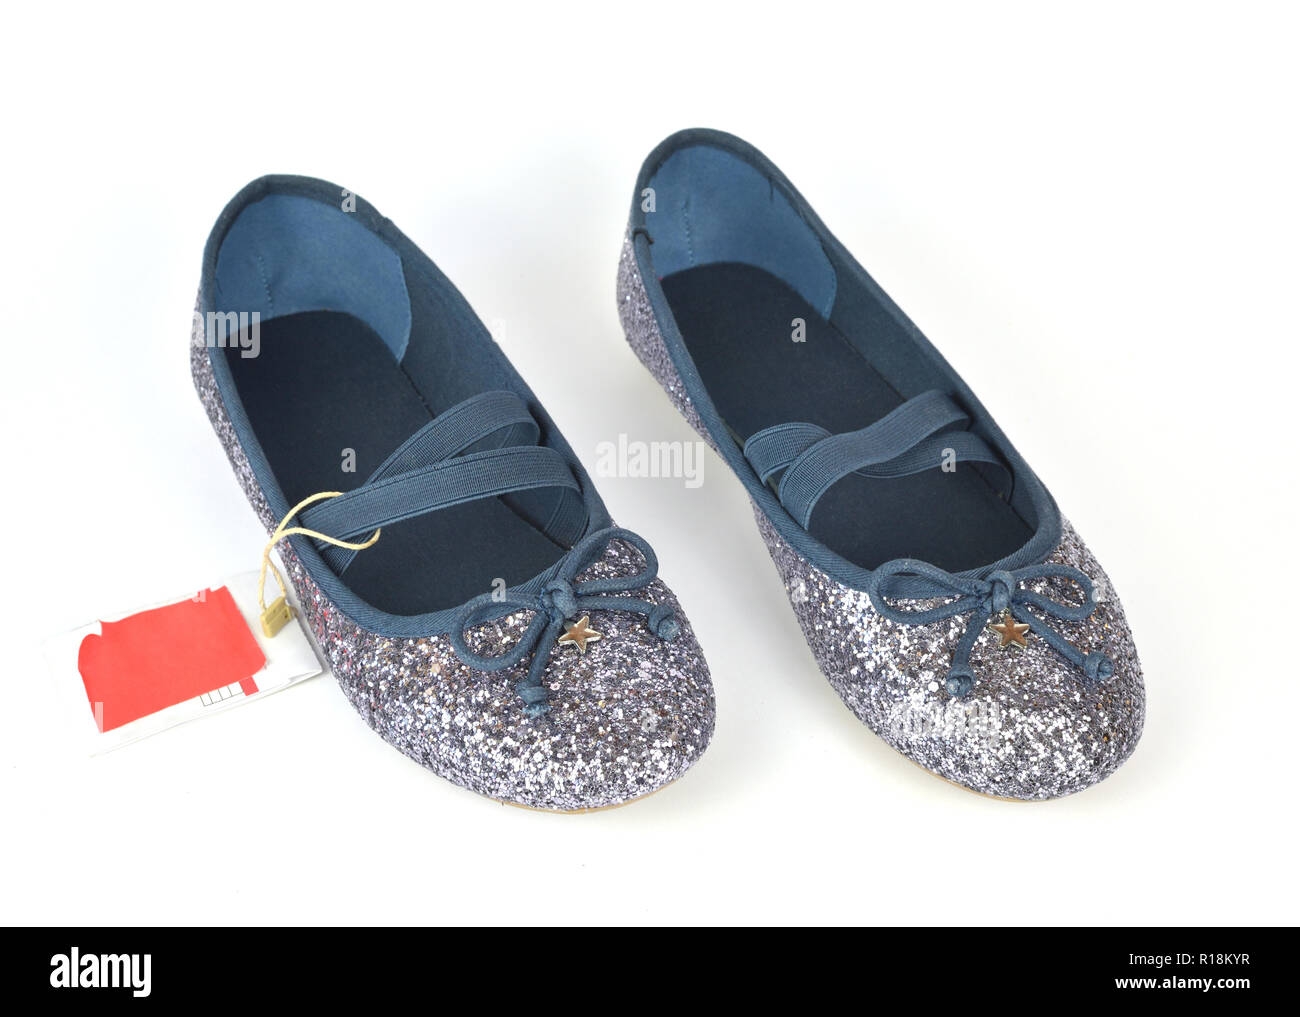 Shimmer silver blue ballerina flat shoes with crossed elastic drawstrings and a price tag on white background - Stock Image